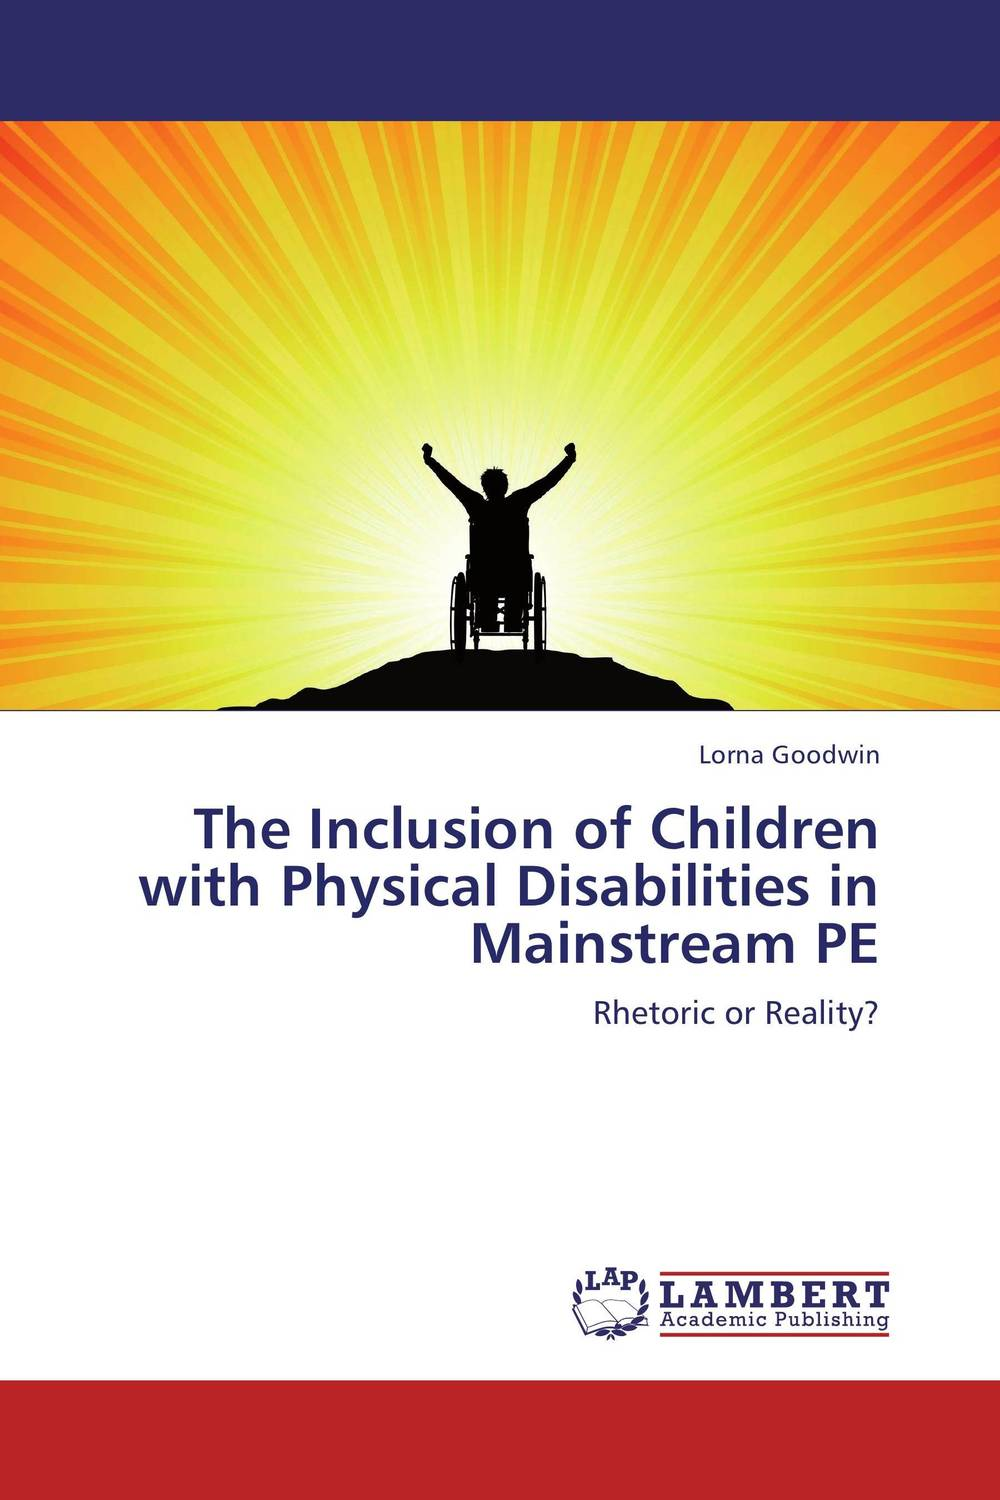 The Inclusion of Children with Physical Disabilities in Mainstream PE катушка для спиннинга agriculture fisheries and magic with disabilities 13